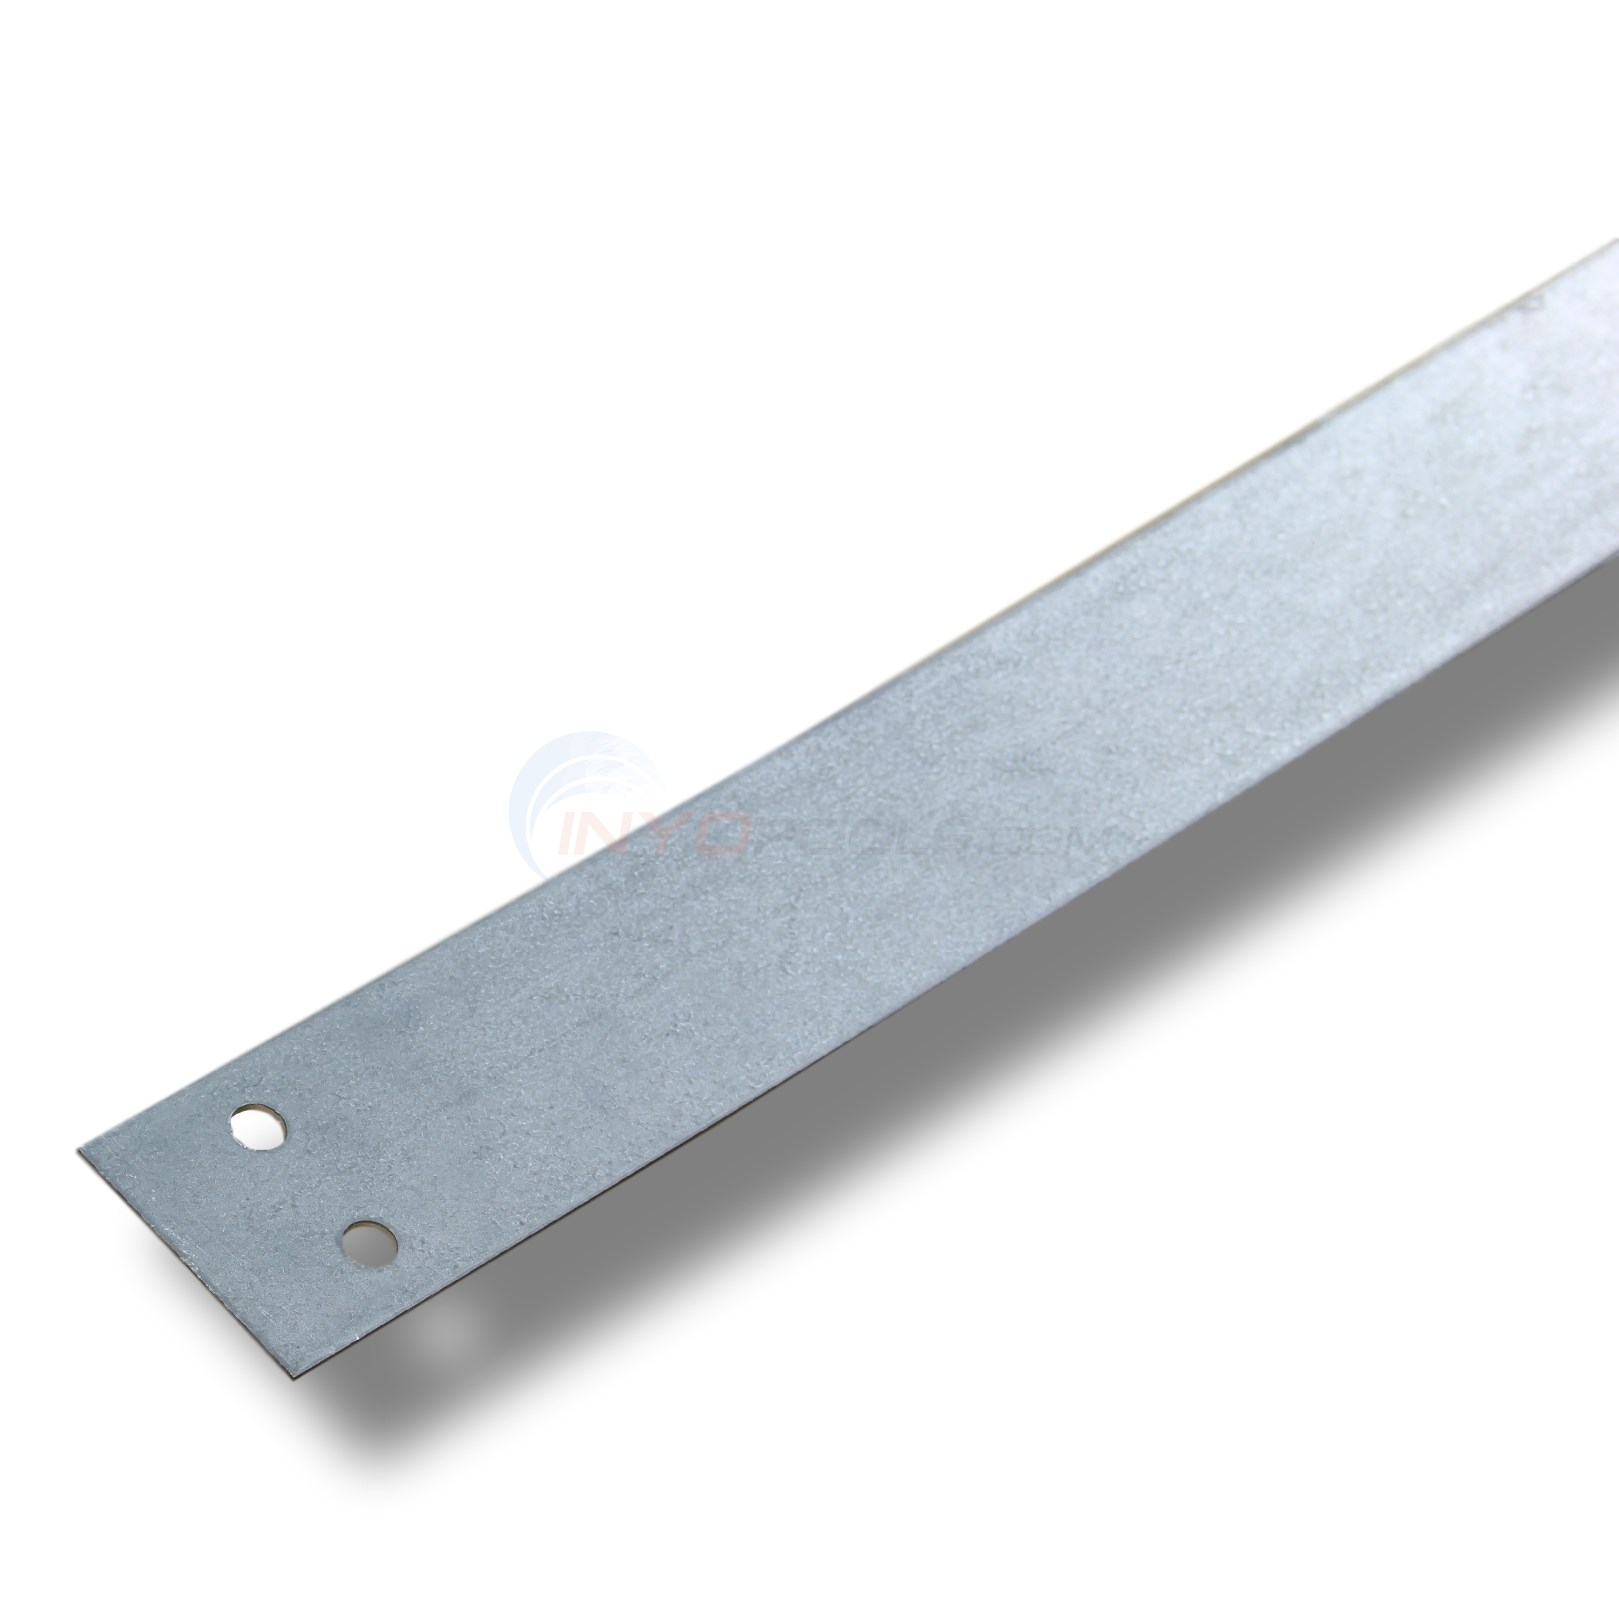 "Wilbar Strap Section 28-5/8"" (Single) - 33095"